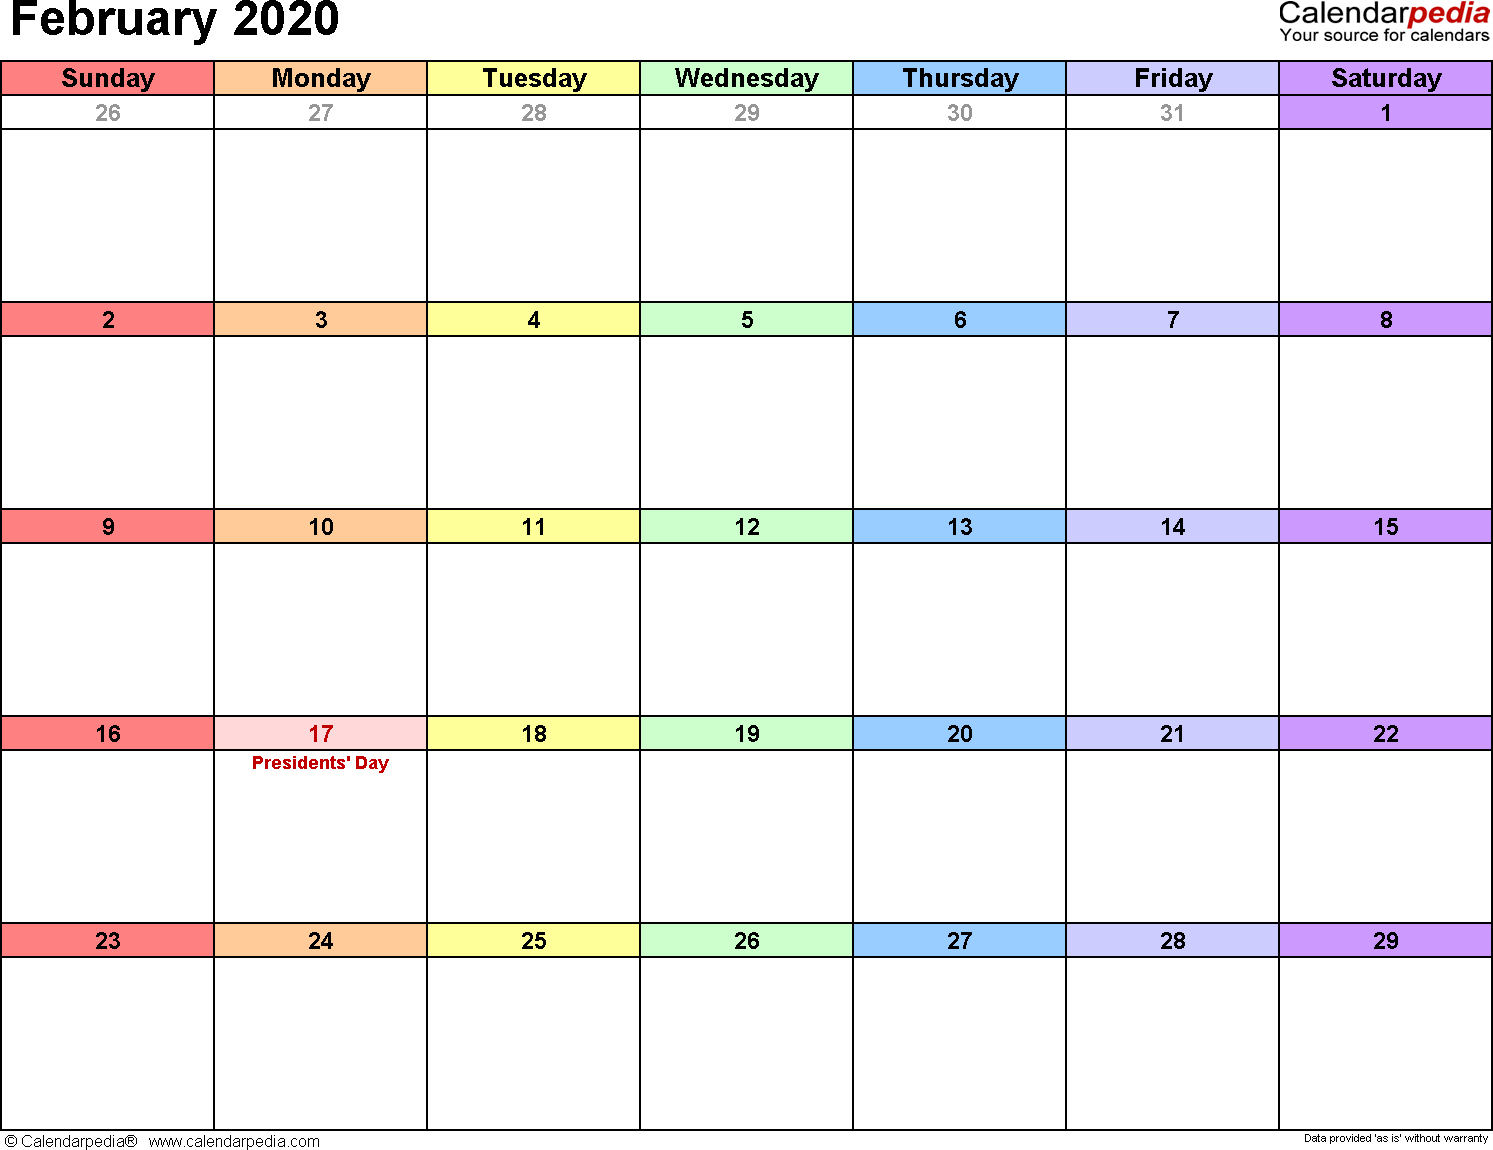 Blank Calendar Feb 2020 February 2020 Calendars for Word, Excel & PDF